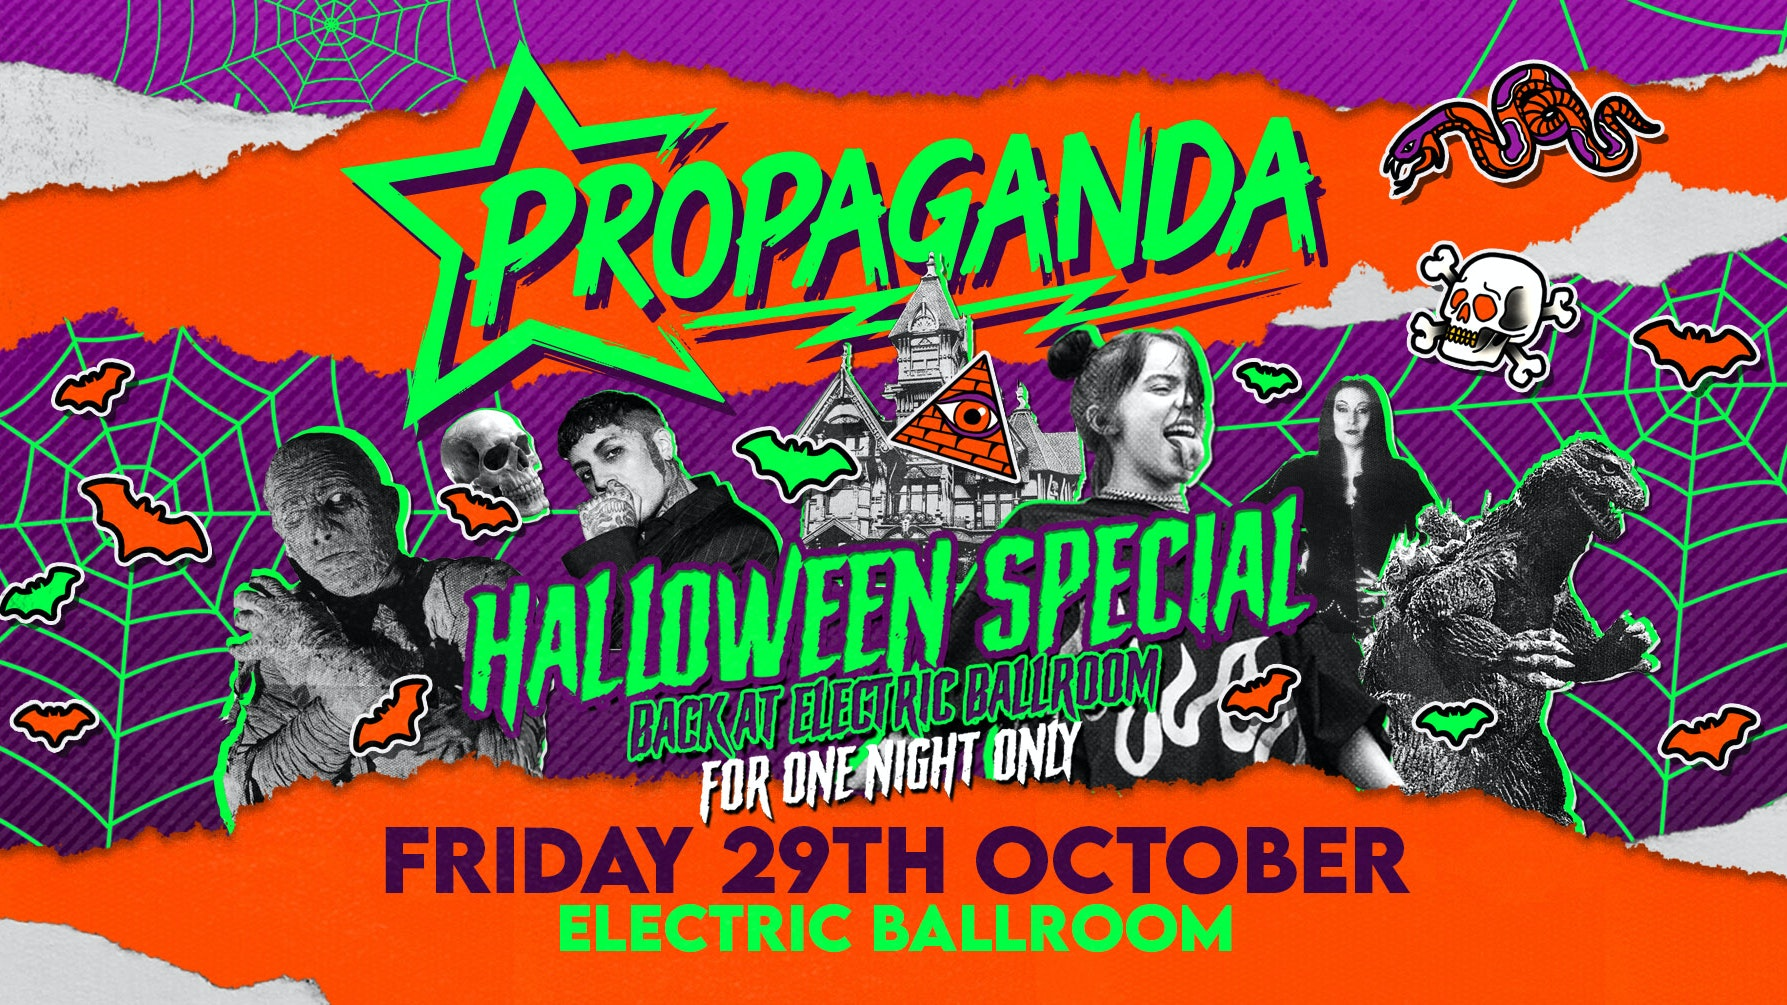 Propaganda London Halloween Special! Back at ELECTRIC BALLROOM for one night only!